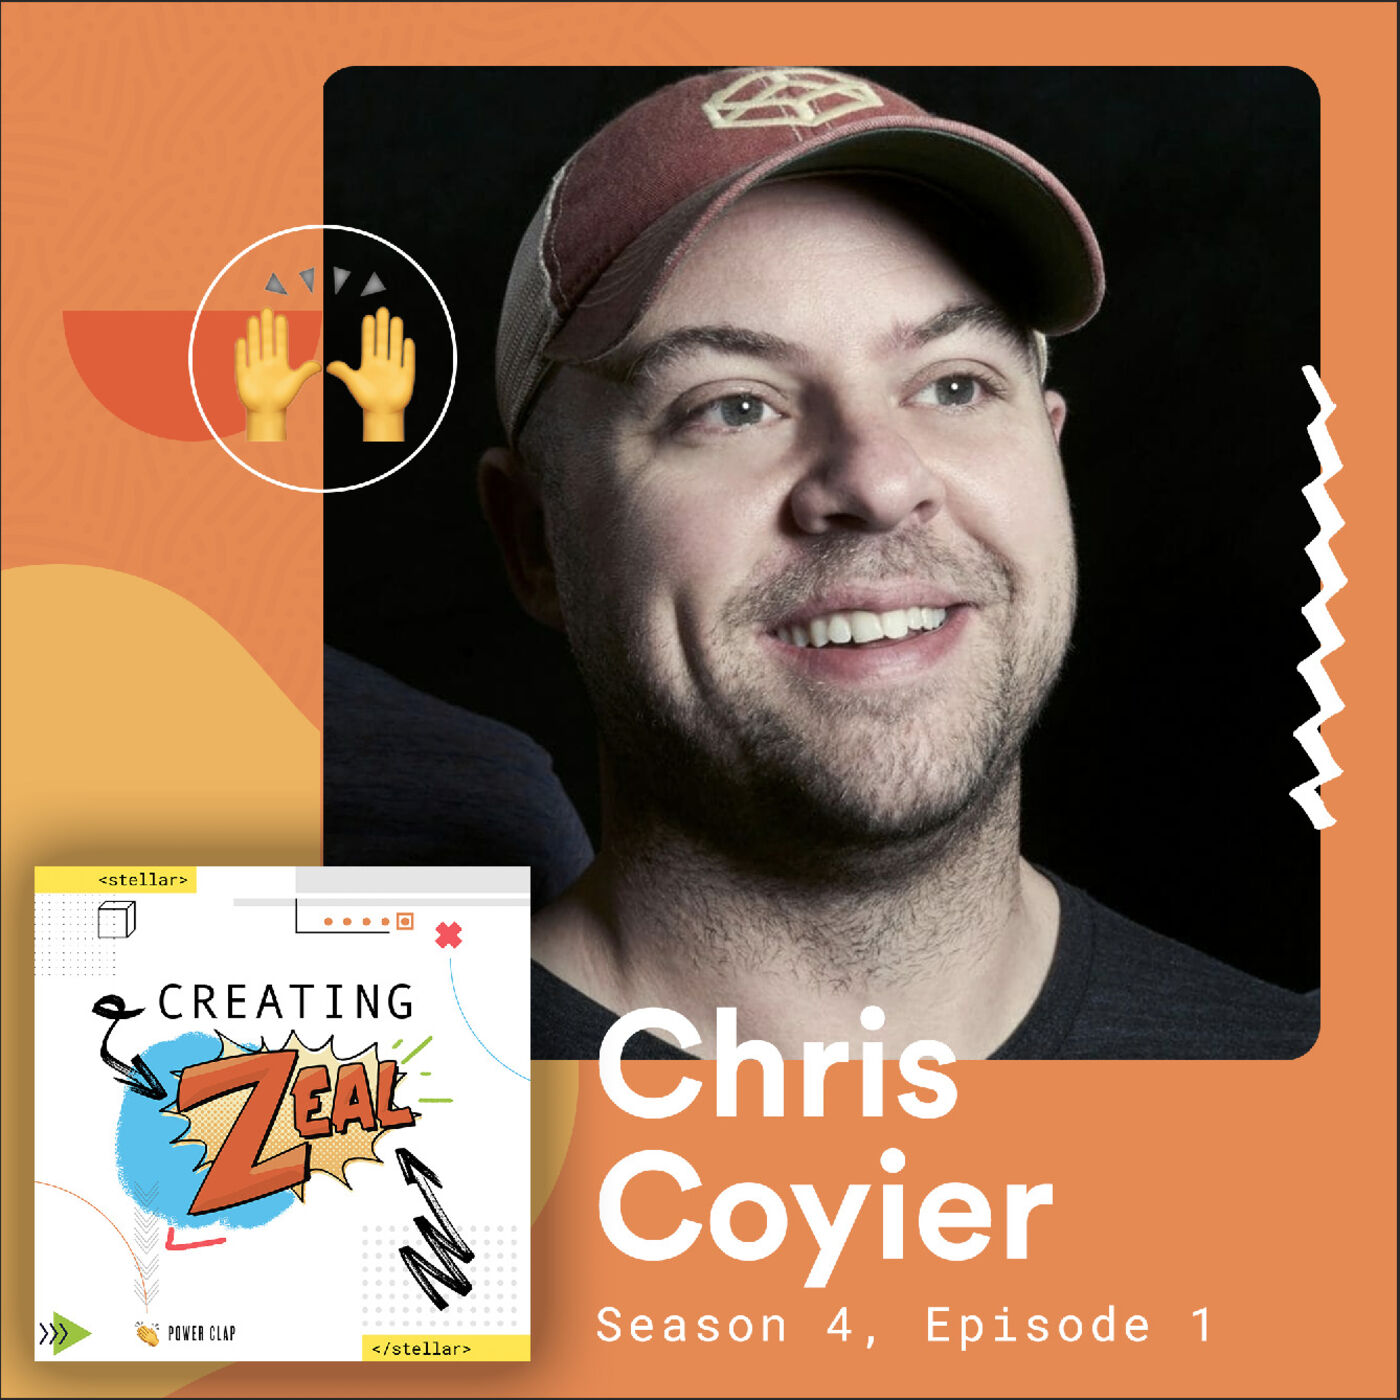 A Conversation with Chris Coyier